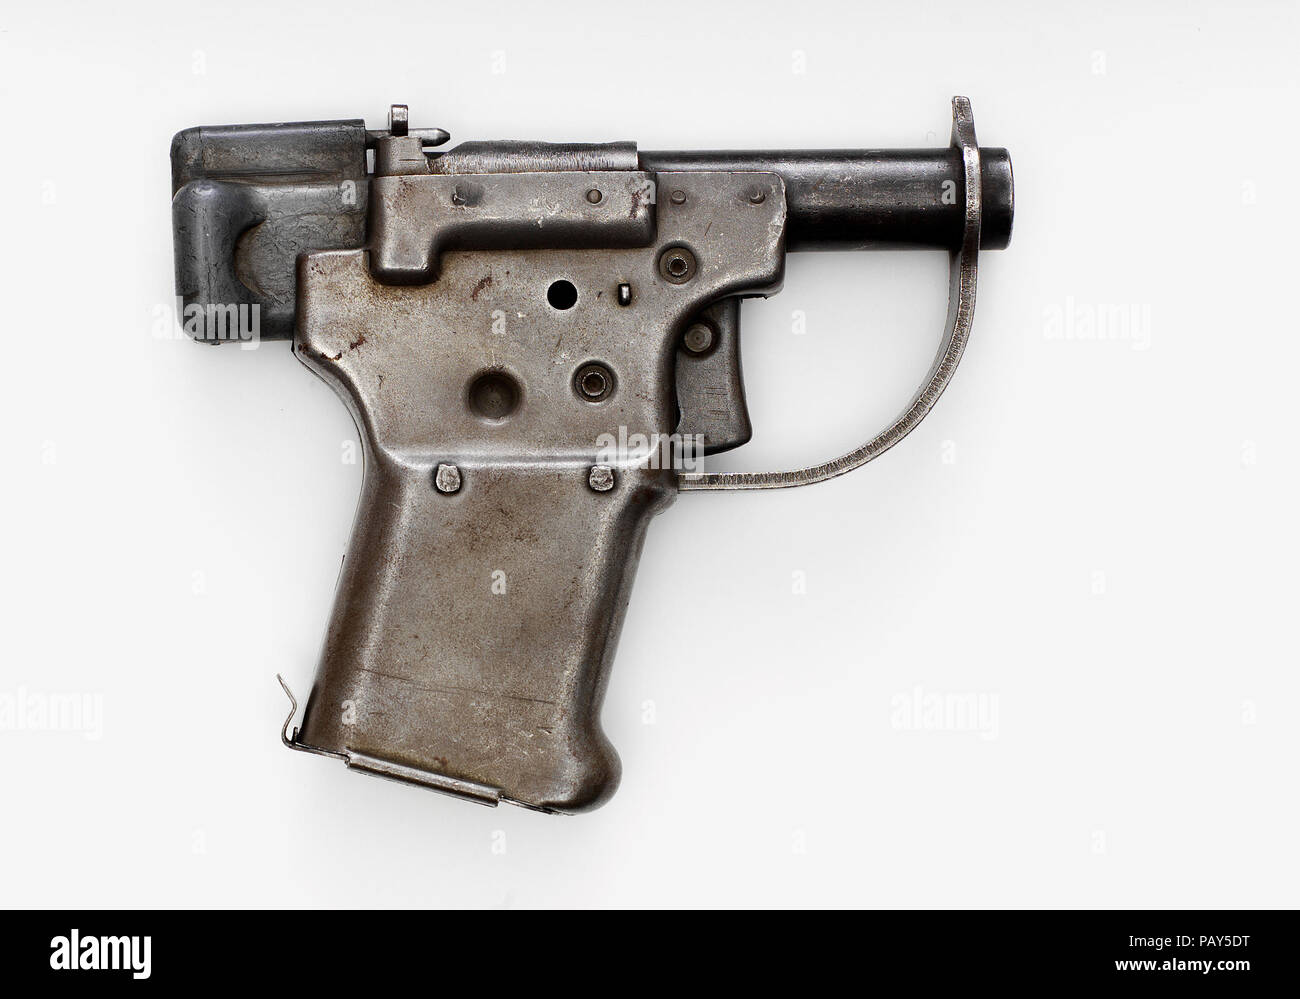 FP-45 Liberator centrefire breech loading single shot military pistol - Stock Image